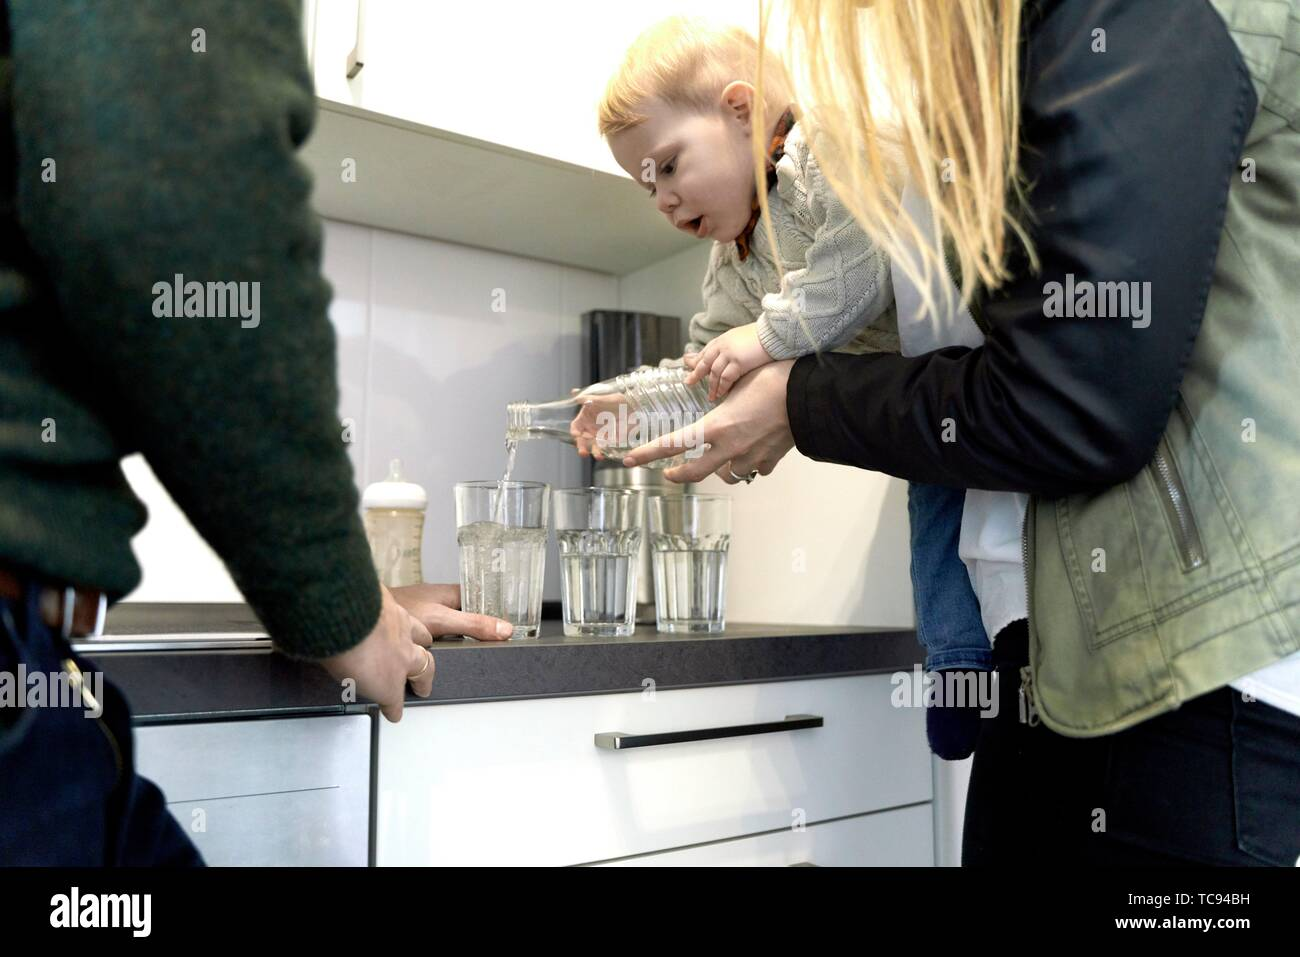 parents guiding baby toddler child filling water in drinking glasses in kitchen at home, pouring, in Cottbus, Brandenburg, Germany. - Stock Image